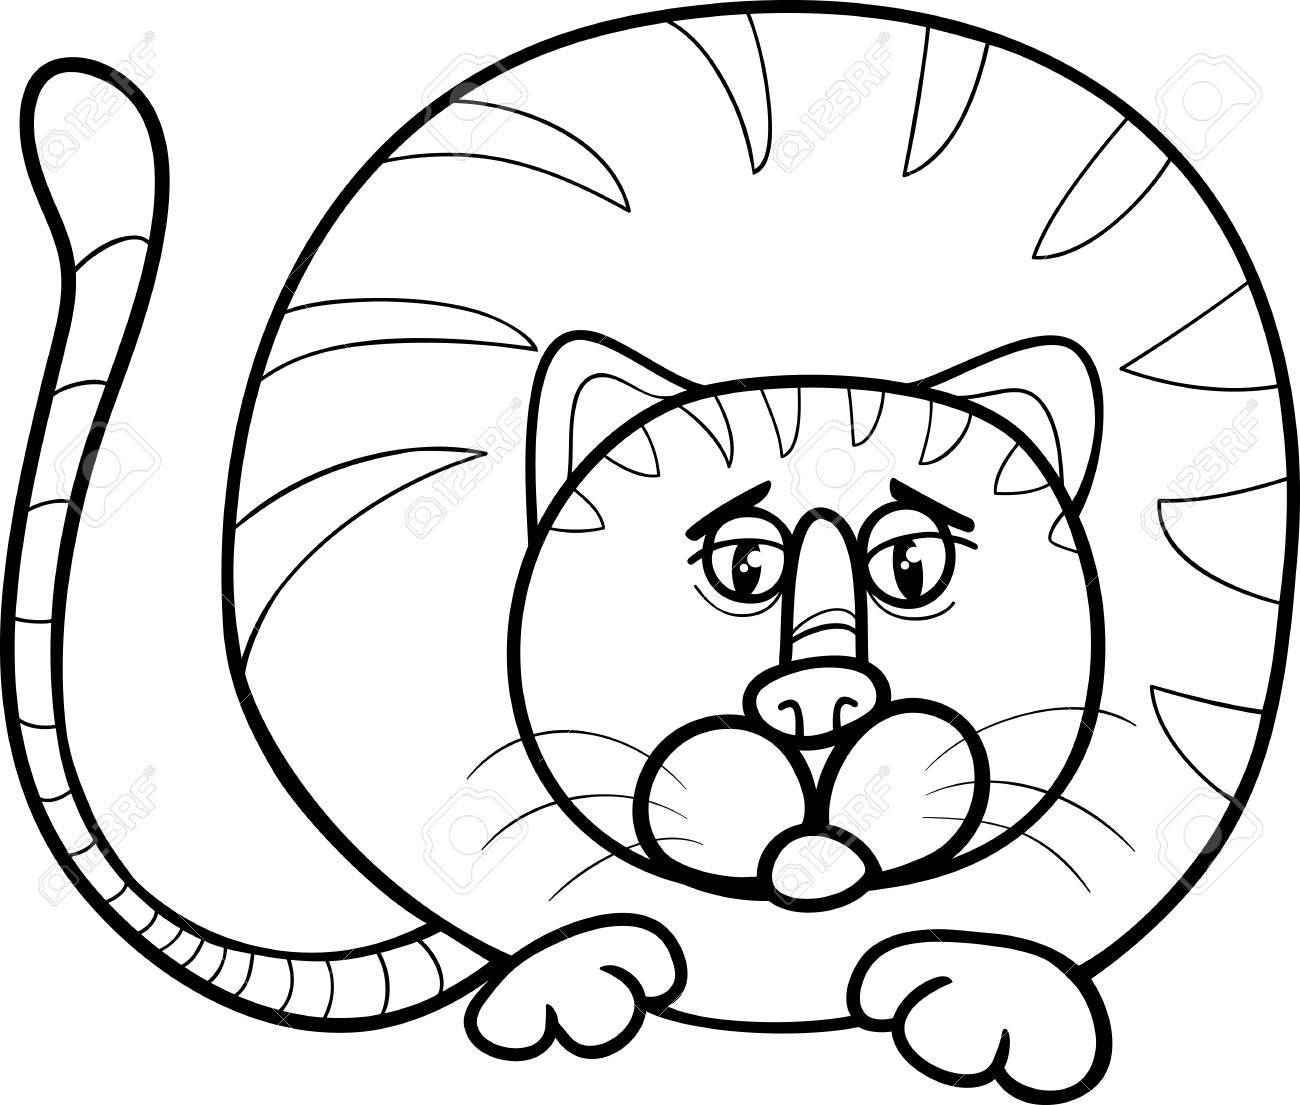 Black And White Cartoon Illustration Of Funny Fat Cat Character For Coloring Book Stock Vector